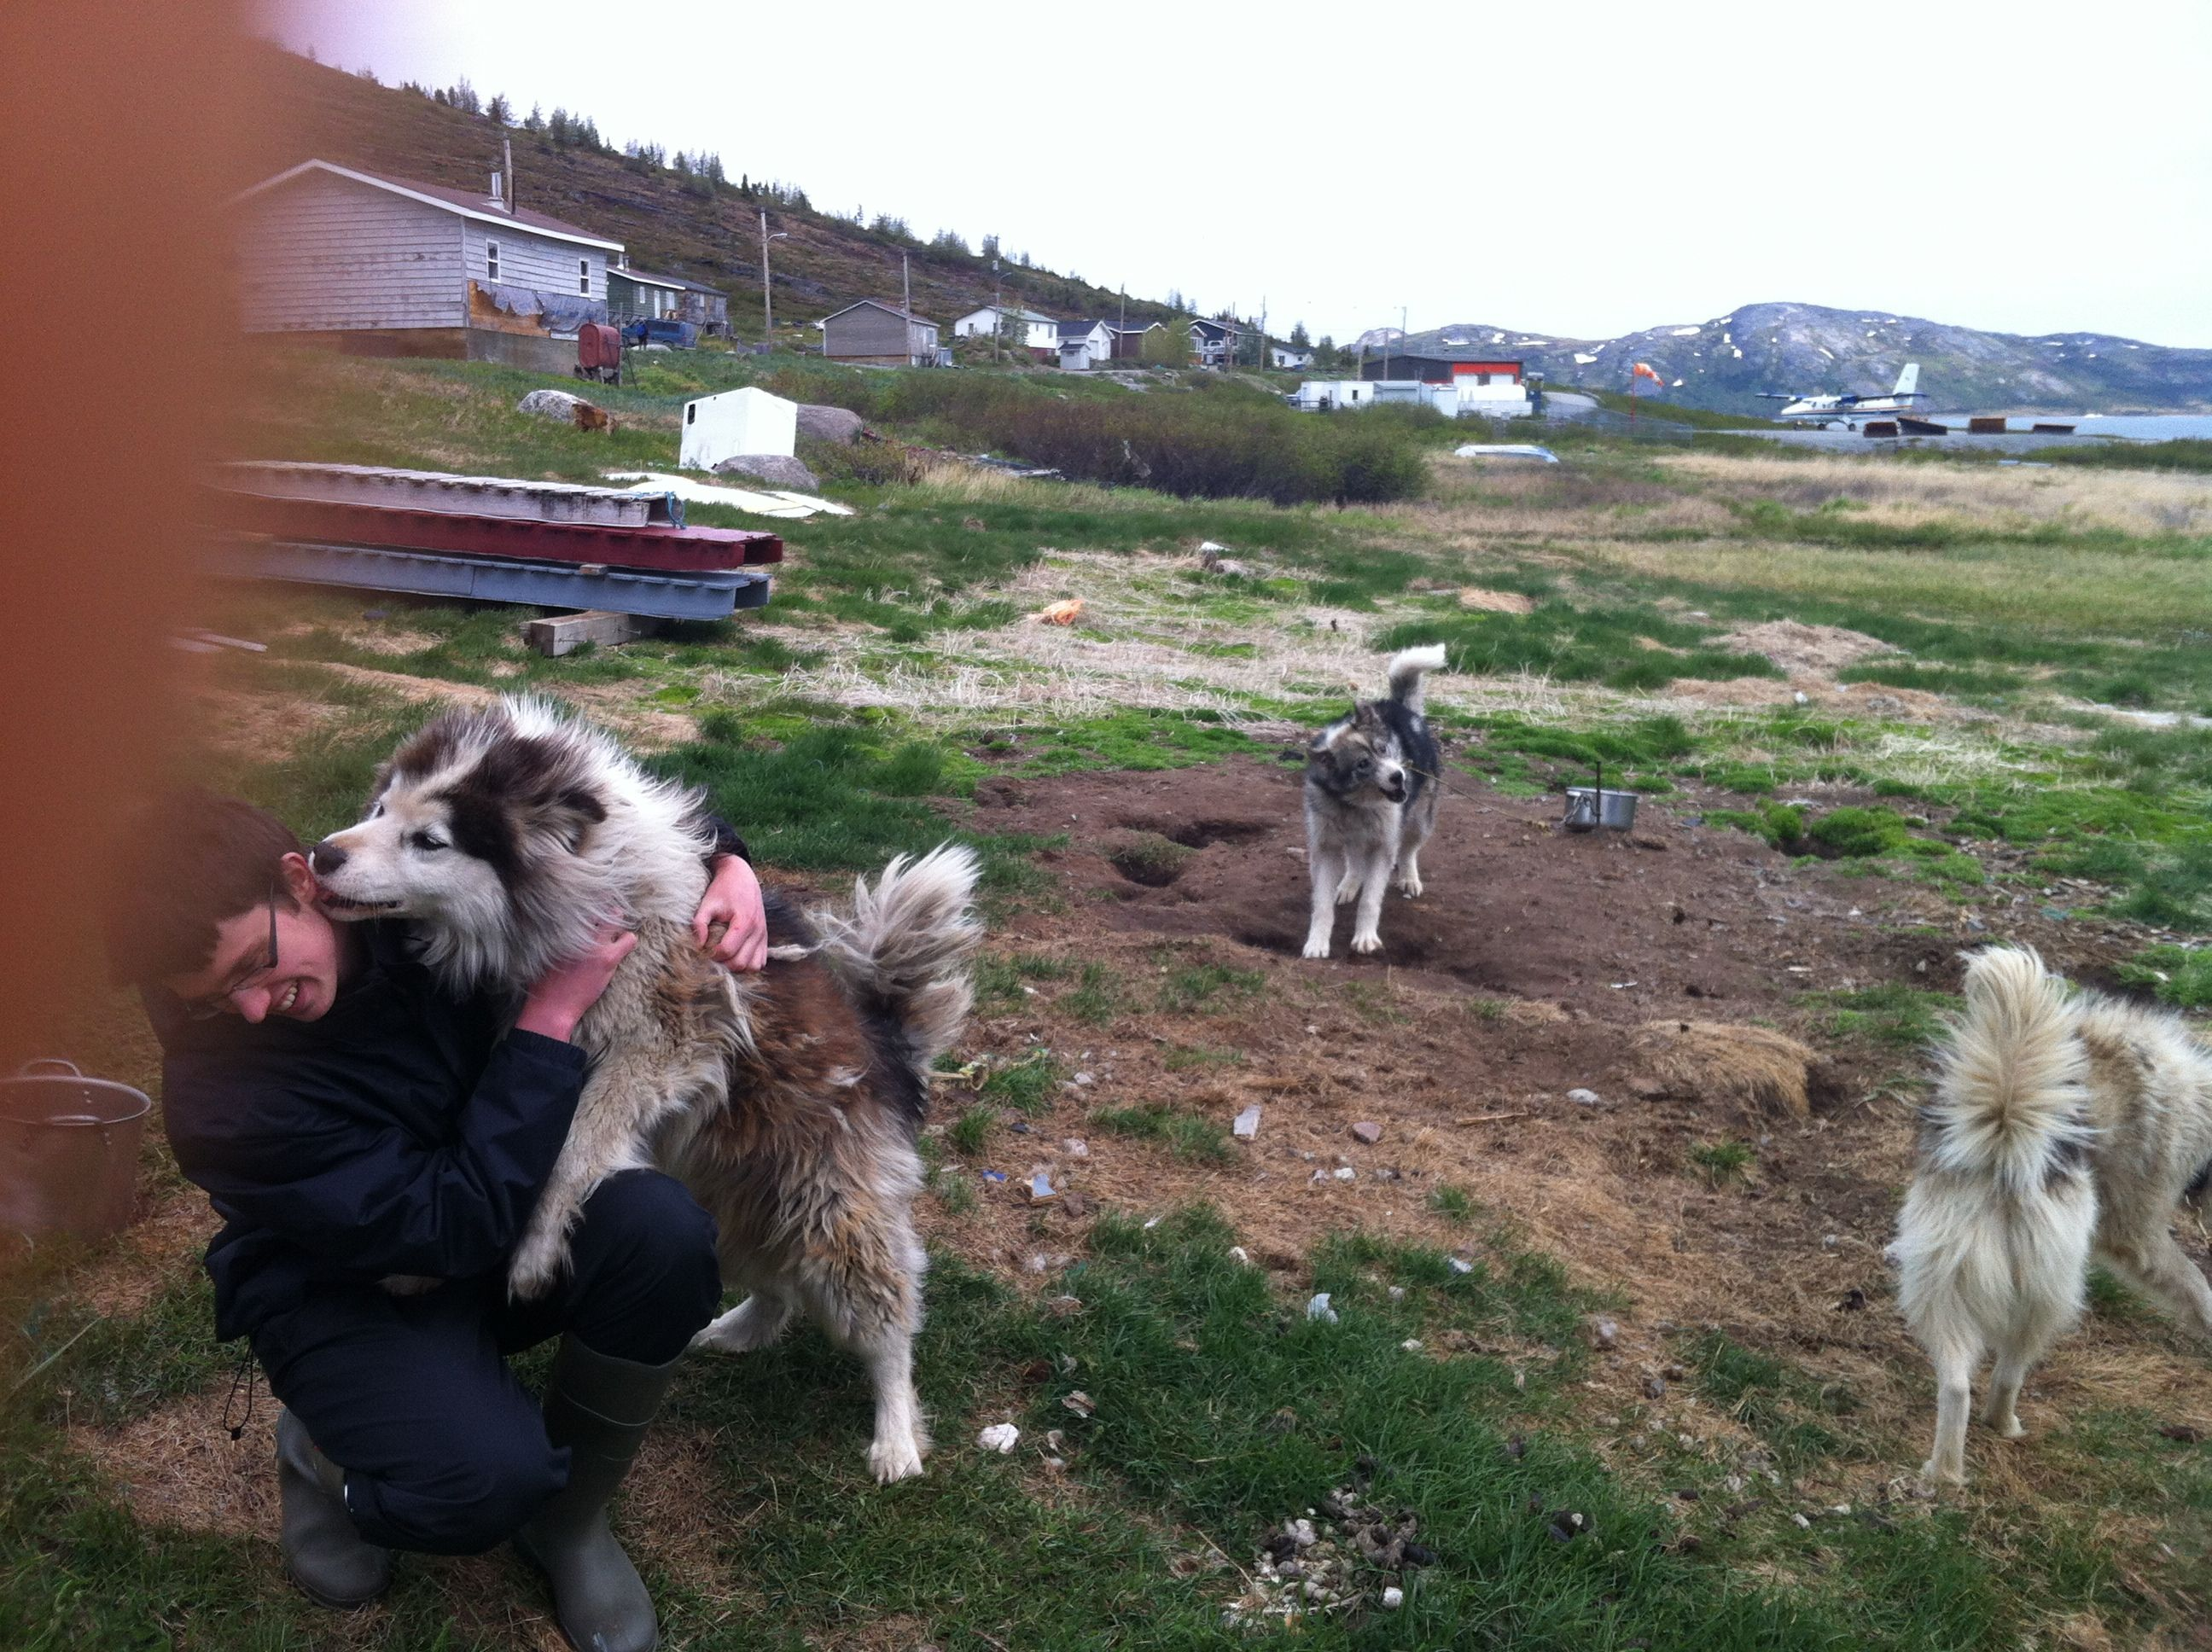 Meeting the sled dogs on my trip to Nain, Newfoundland and